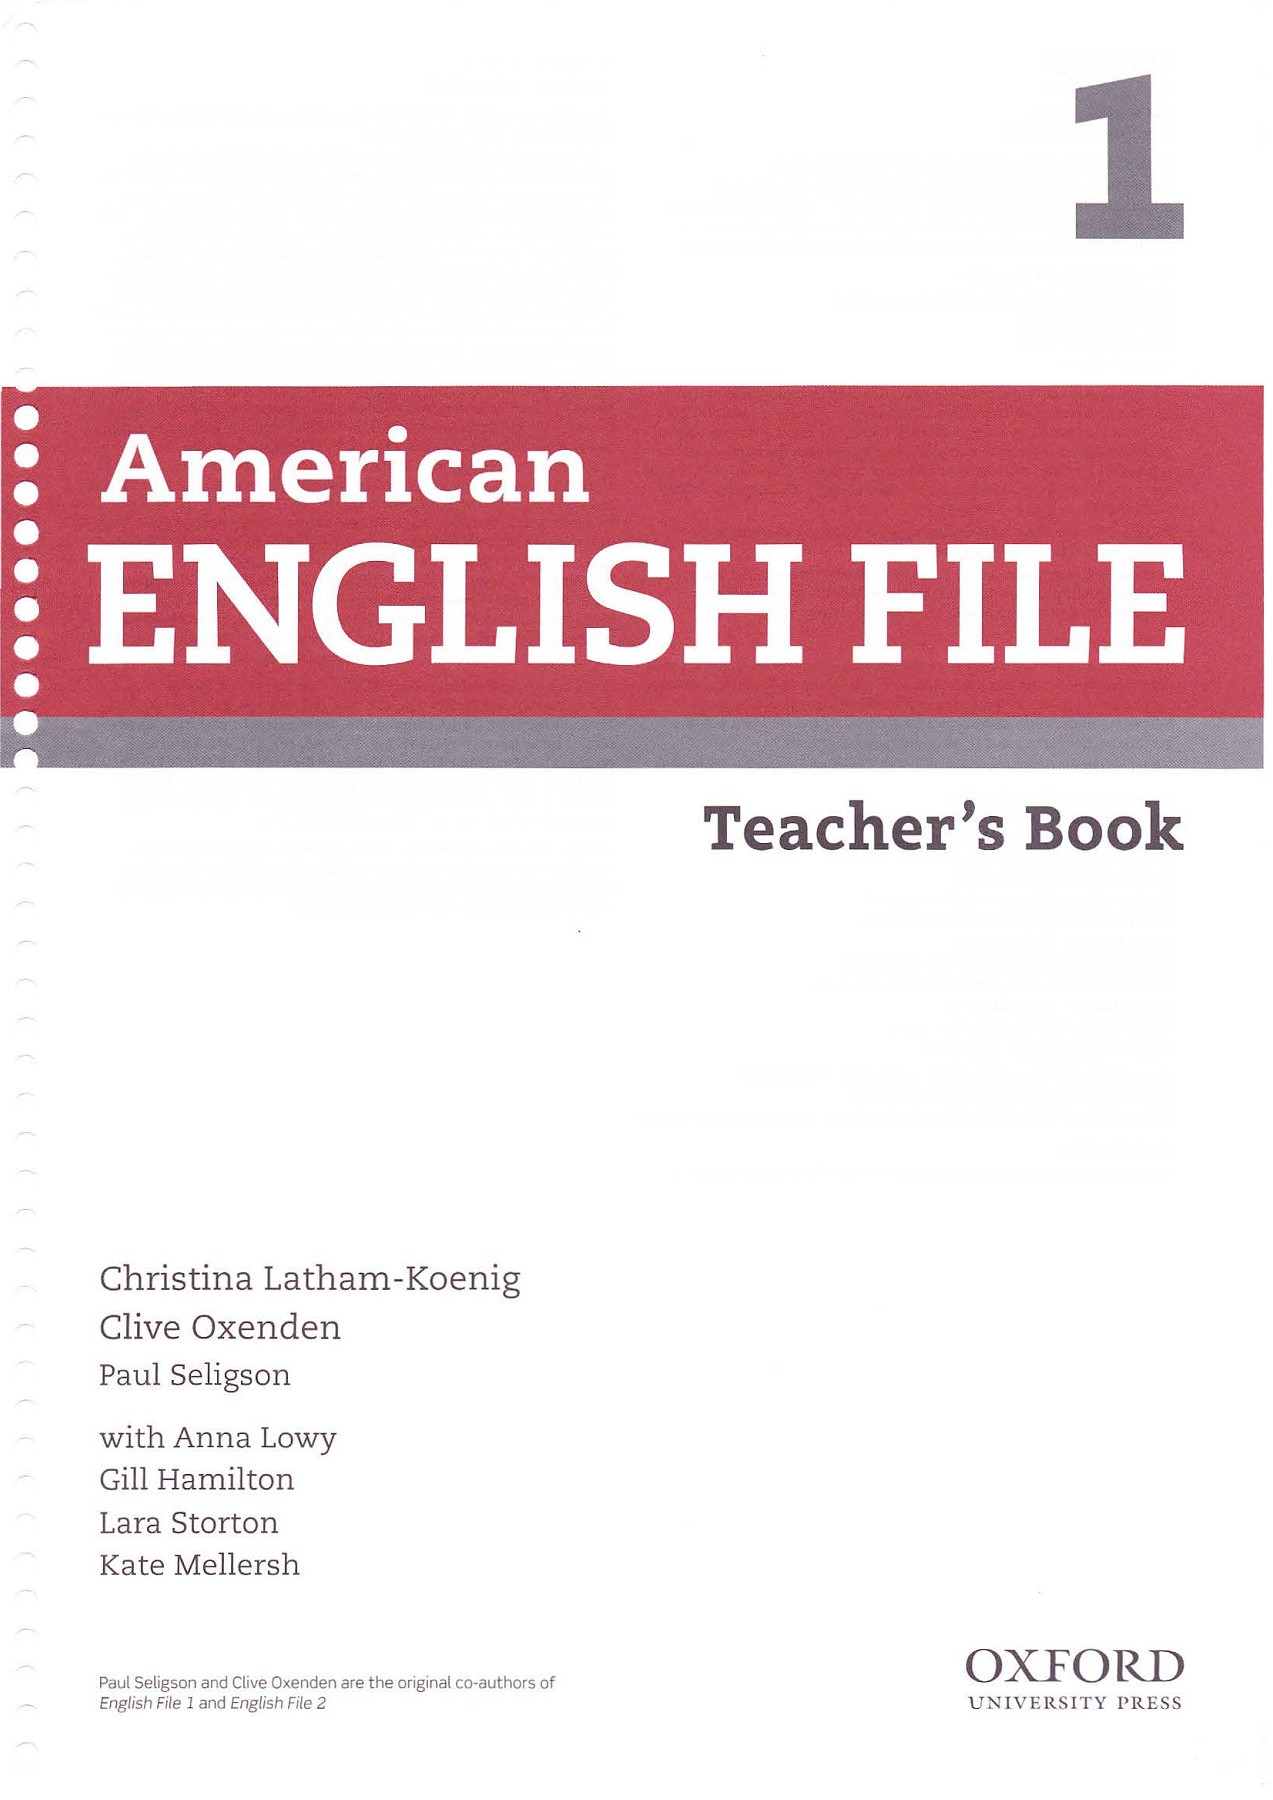 American English File 1 Teachers Book 2nd Edition Pages 251 - 290